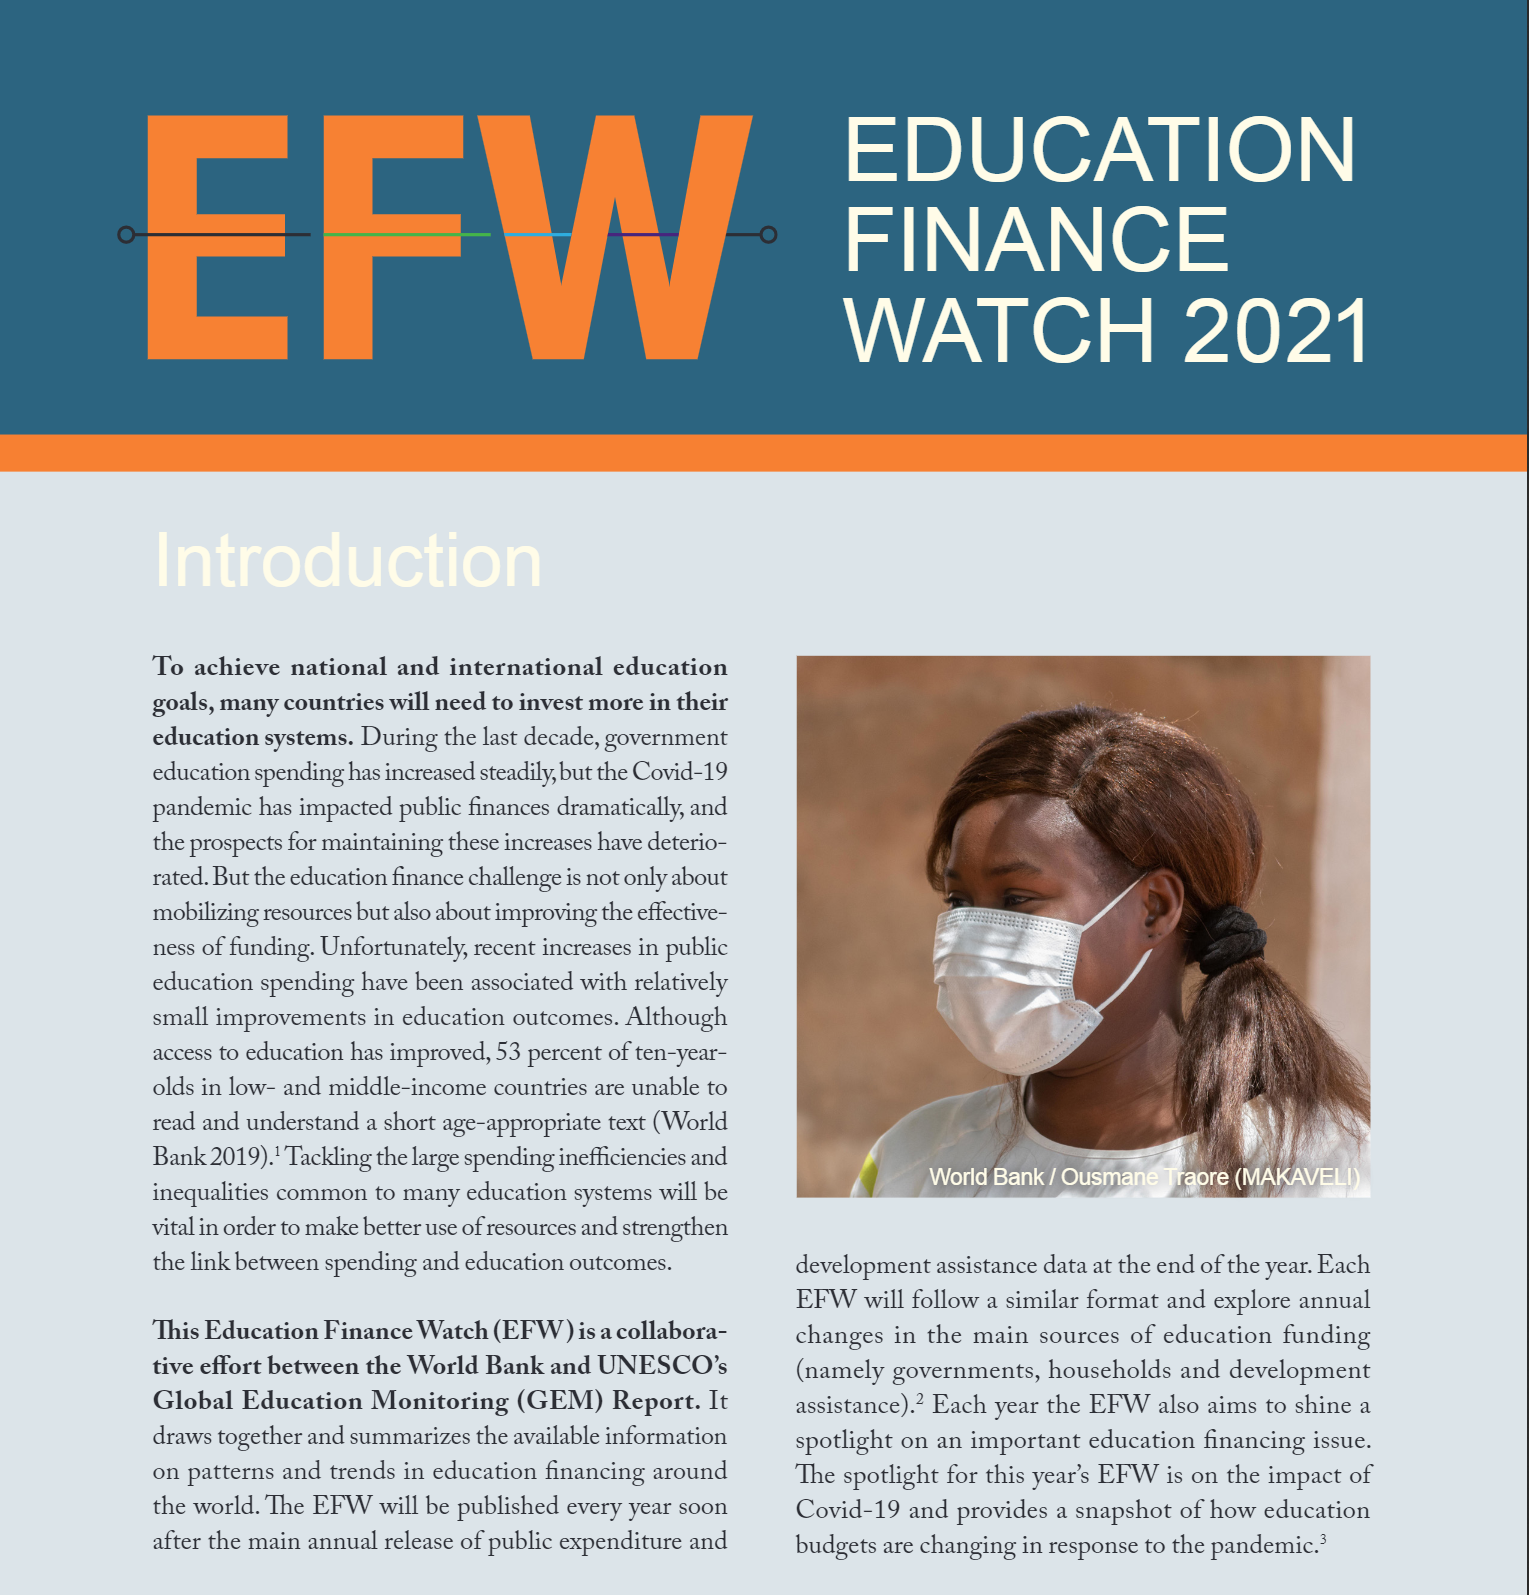 Education Finance Watch 2021